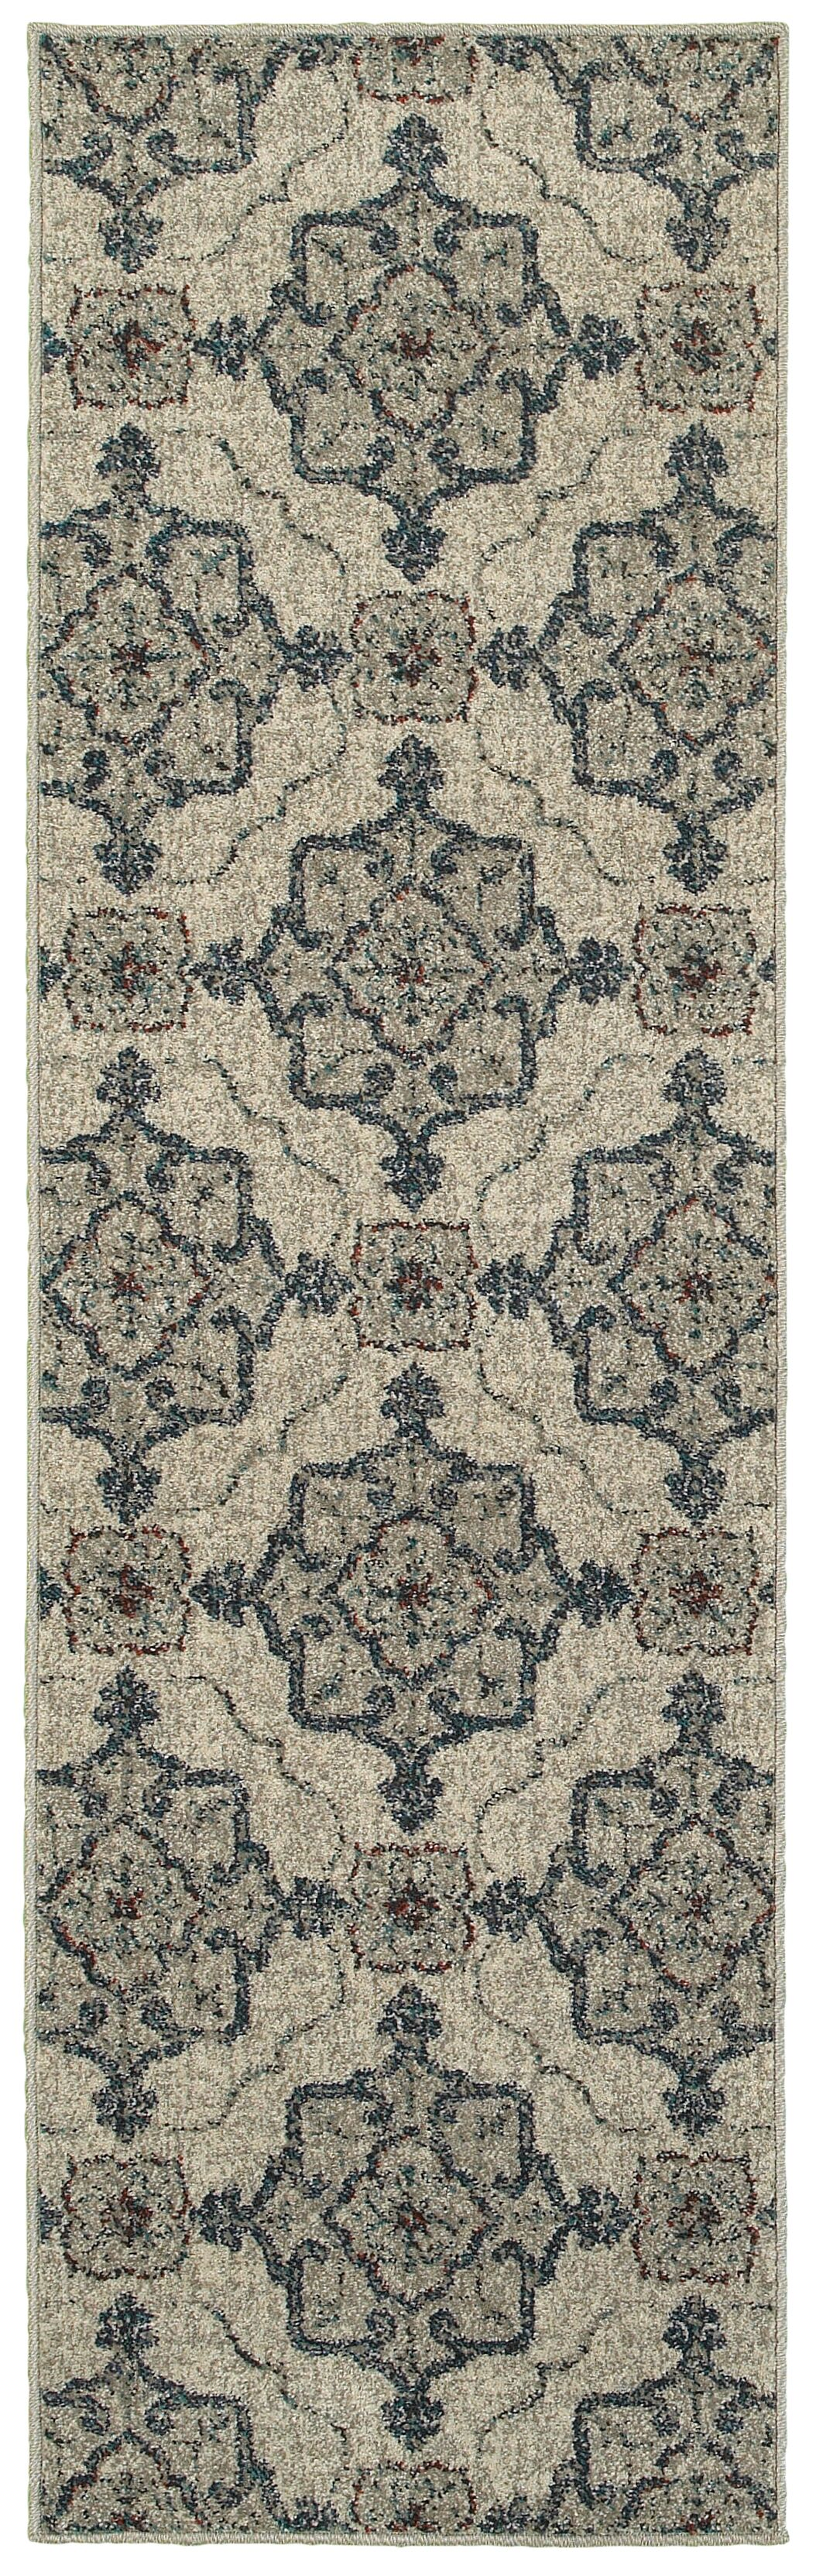 Derby Beige/Gray Area Rug Rug Size: Rectangle 5'3